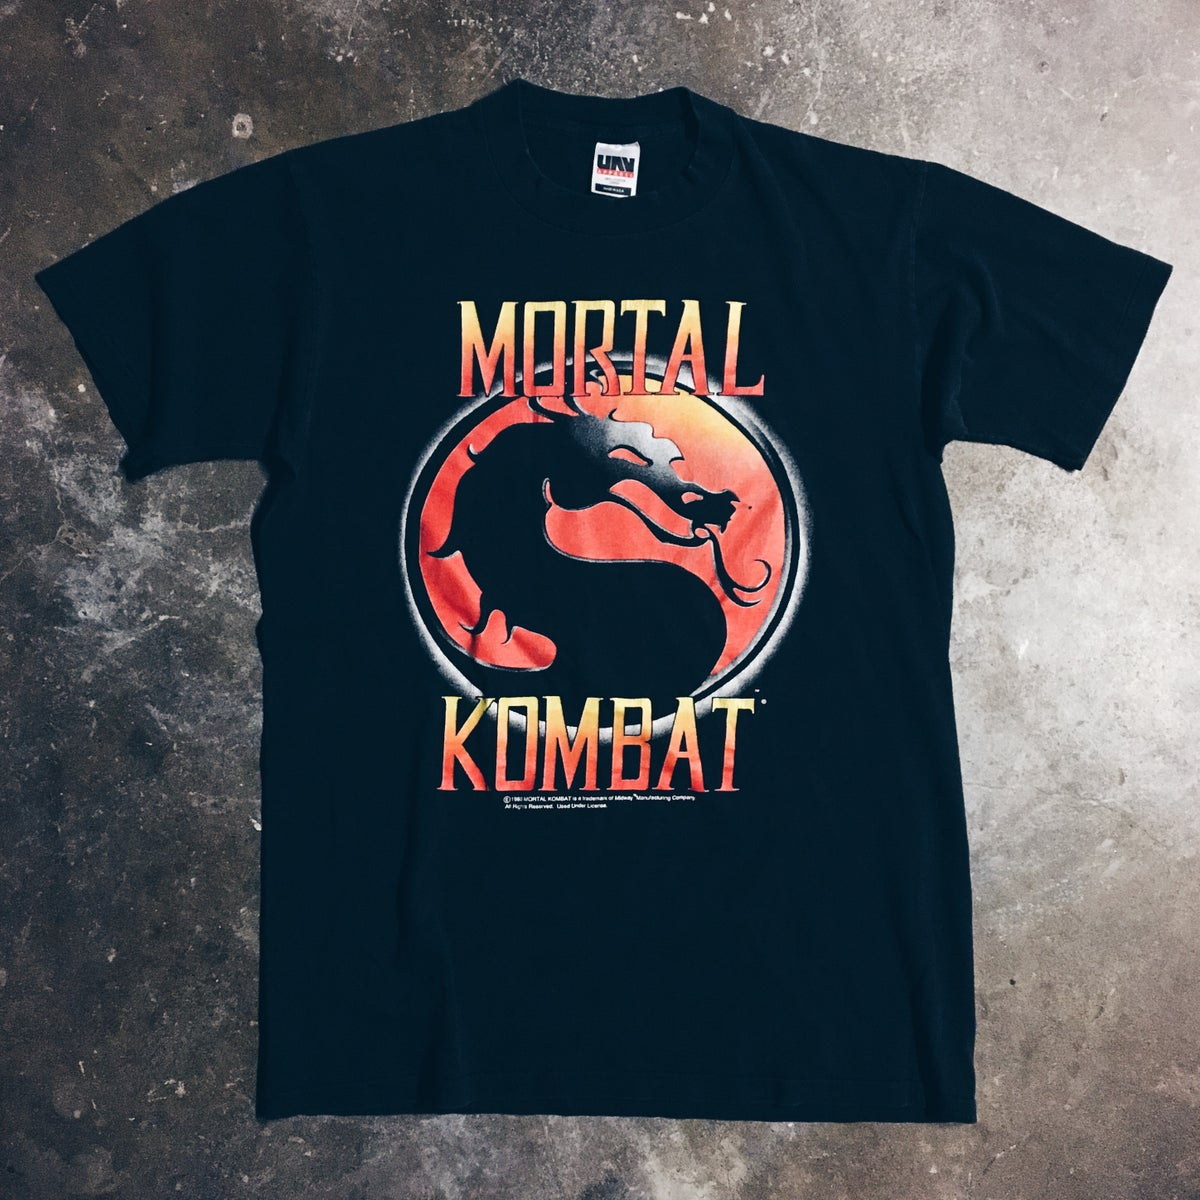 Image of Original 1992 Mortal Kombat Tee.